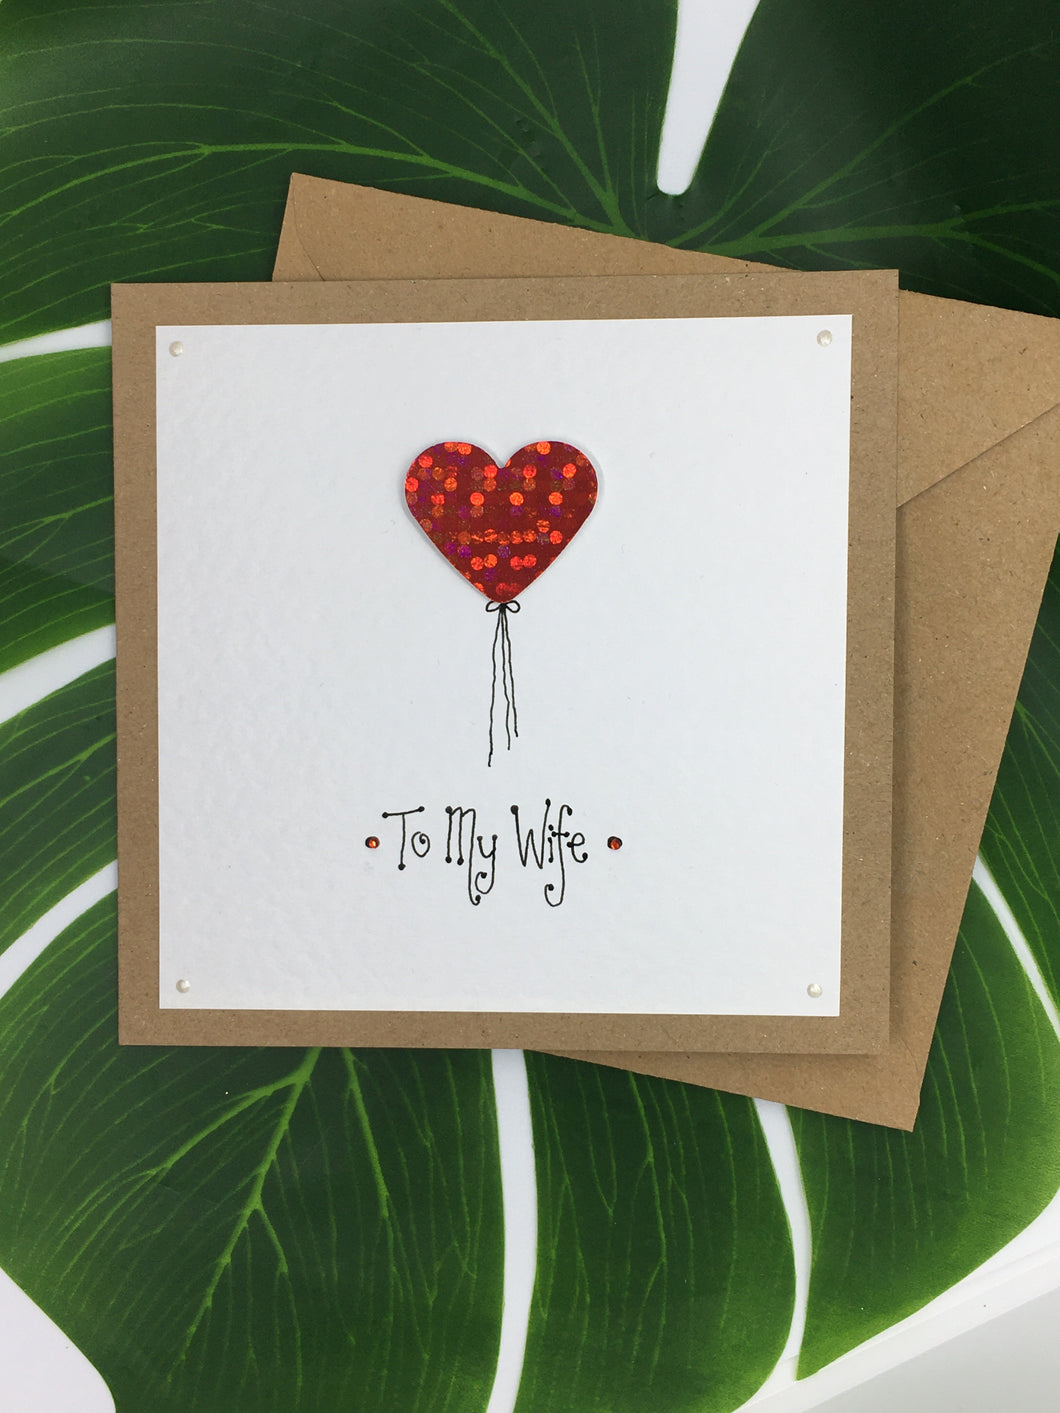 Wife Valentine's Day Card - Handmade by Natalie